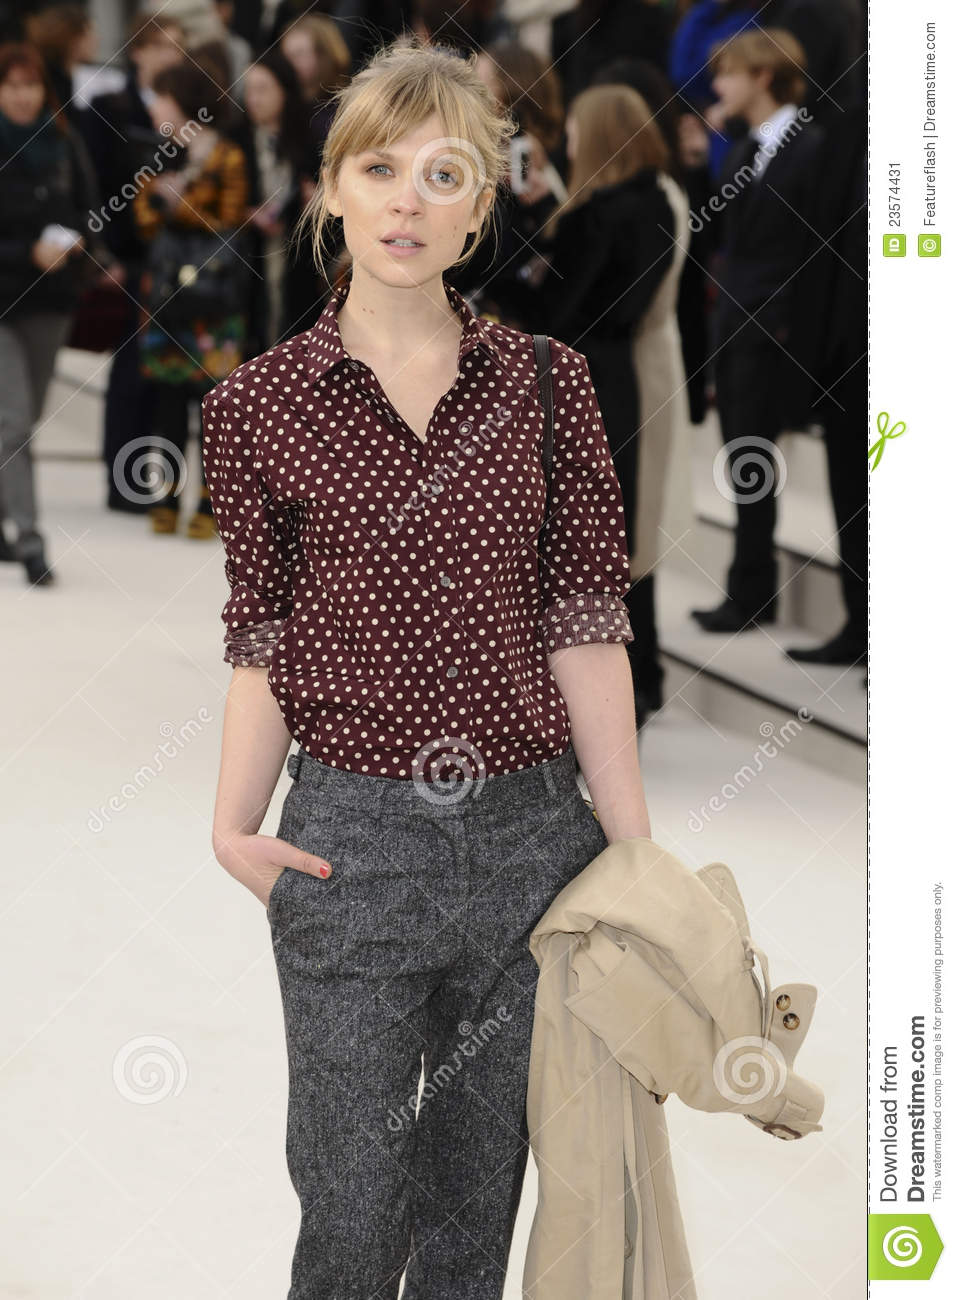 b327dd58d9c6 Clemence Poesy arriving for the Burberry Prorsum fashion show as part of London  Fashion Week 2012 A W in Kensington Gardens